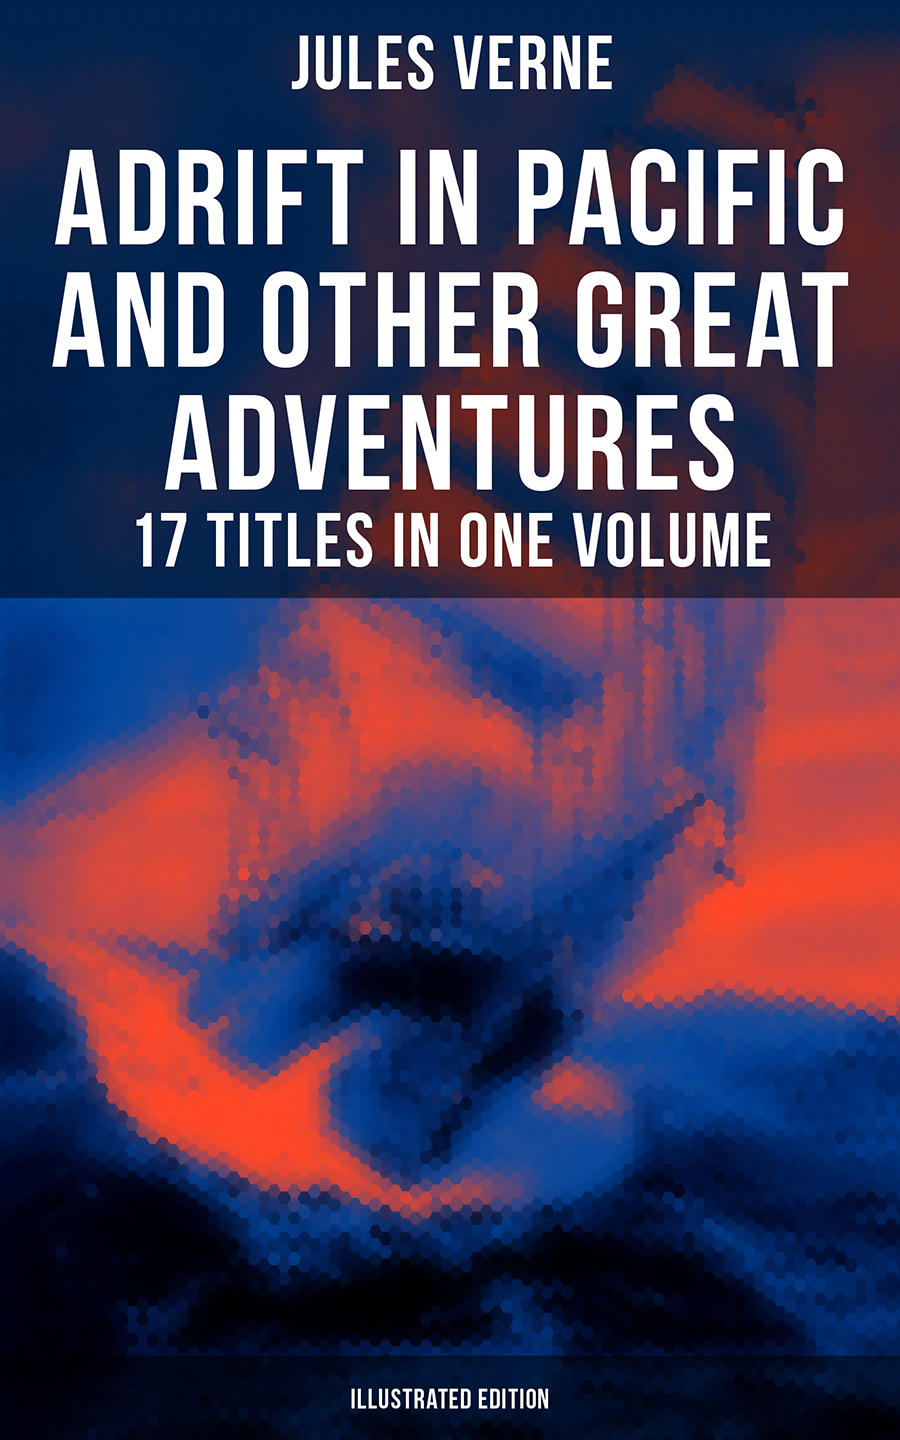 Жюль Верн Adrift in Pacific and Other Great Adventures – 17 Titles in One Volume (Illustrated Edition)